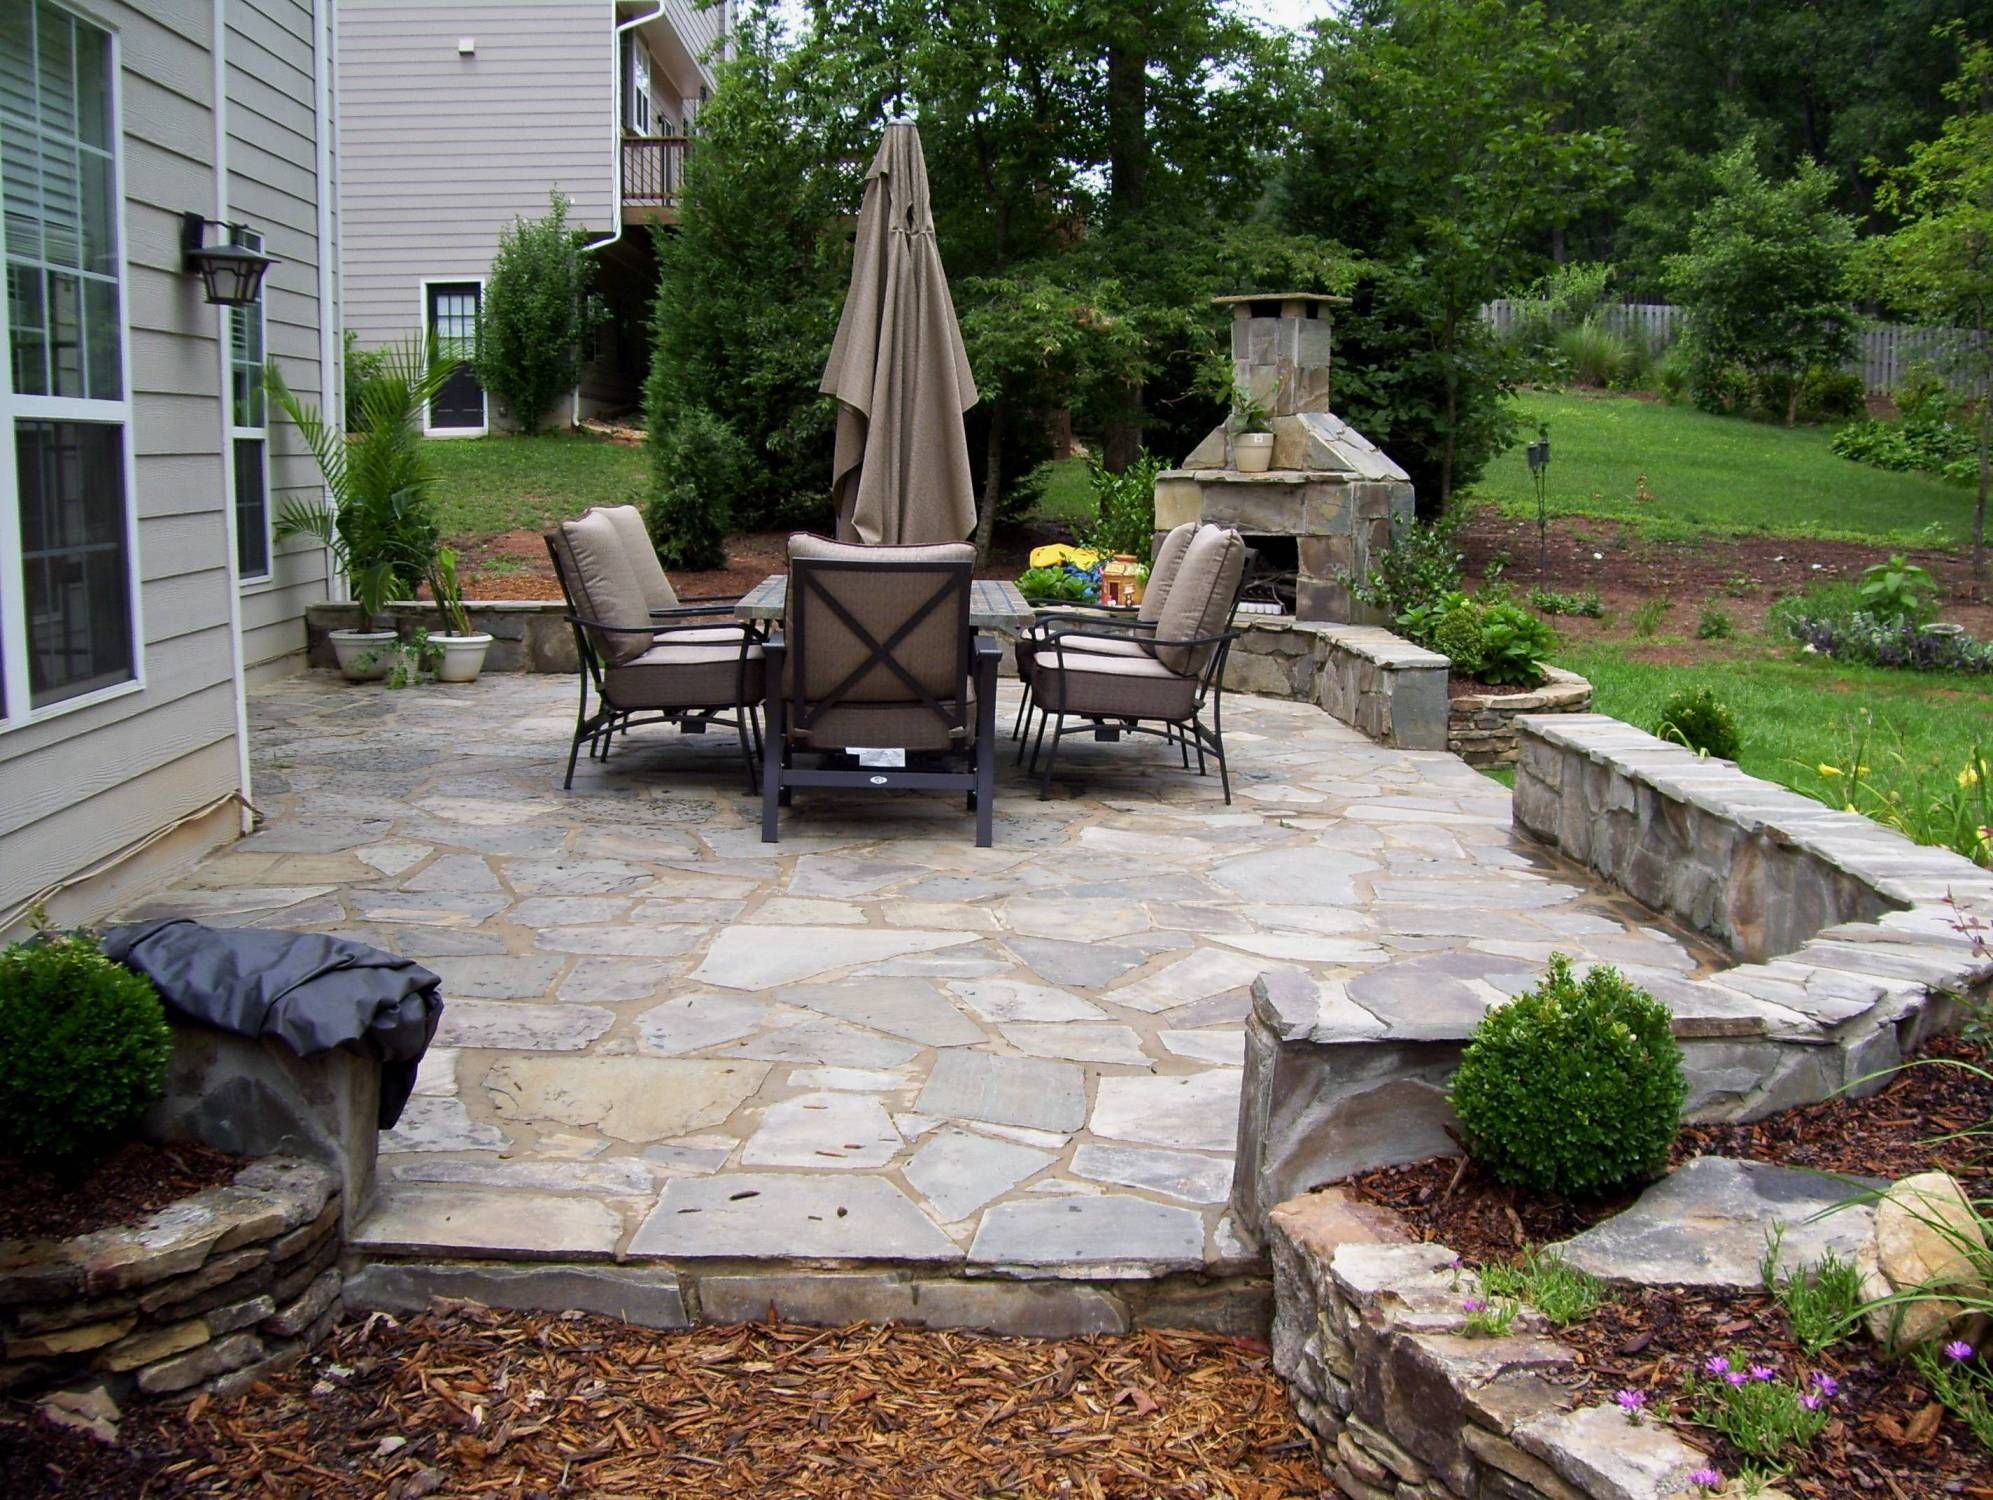 Outdoor Patio Fireplace Stone Fireplaces Natural Ideas Designs Gardens Small Plans Cultured Veneer Pavilion With Pergola Dec Patio Stones Flagstone Patio Patio